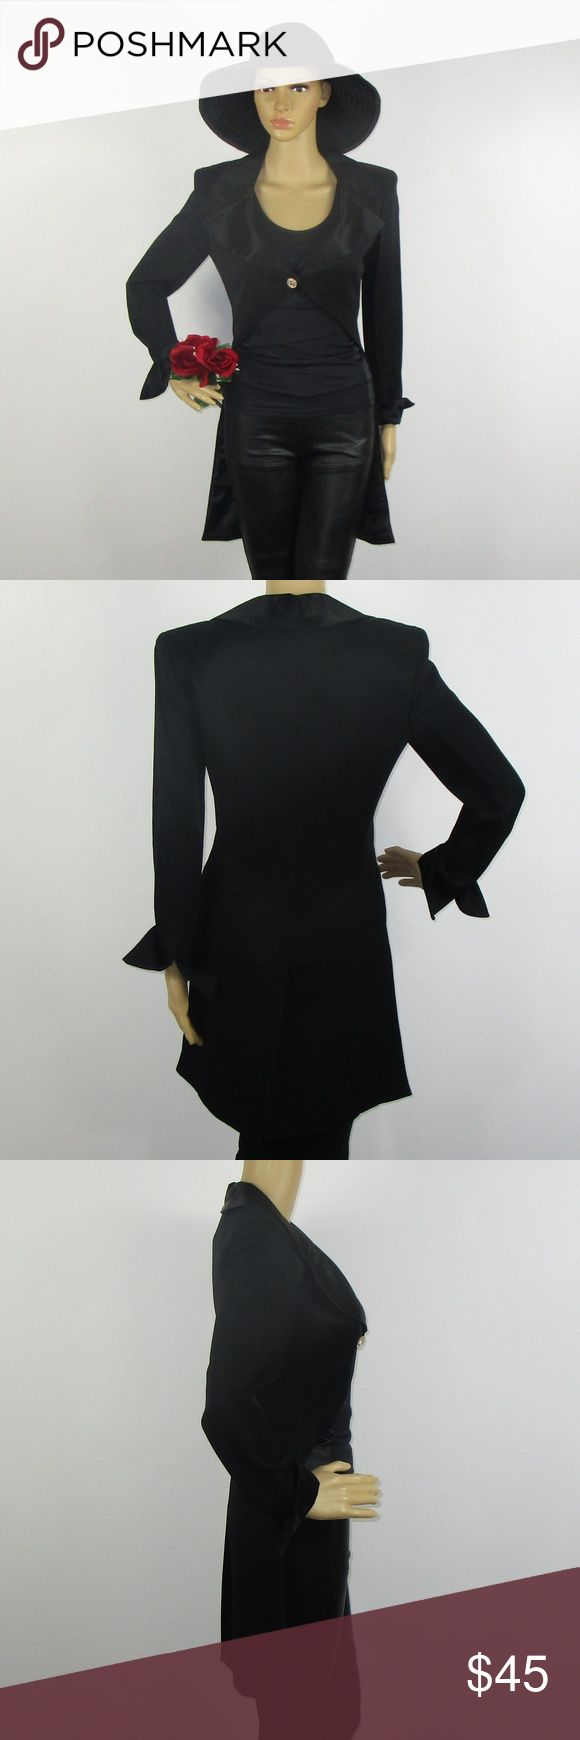 VTG 80s Miss Ashlee Black Tuxedo Top Unique Sz 4 This cute top is in excellent condition! As always offers and bundles are welcome. Feel free to add one or more items to a bundle for a private discount offer!!!  Armpit to armpit is 16.25 inches across Waist is 14.75 inches across Sleeve length is 20.5 inches  Length is 34 inches Miss Ashlee Tops